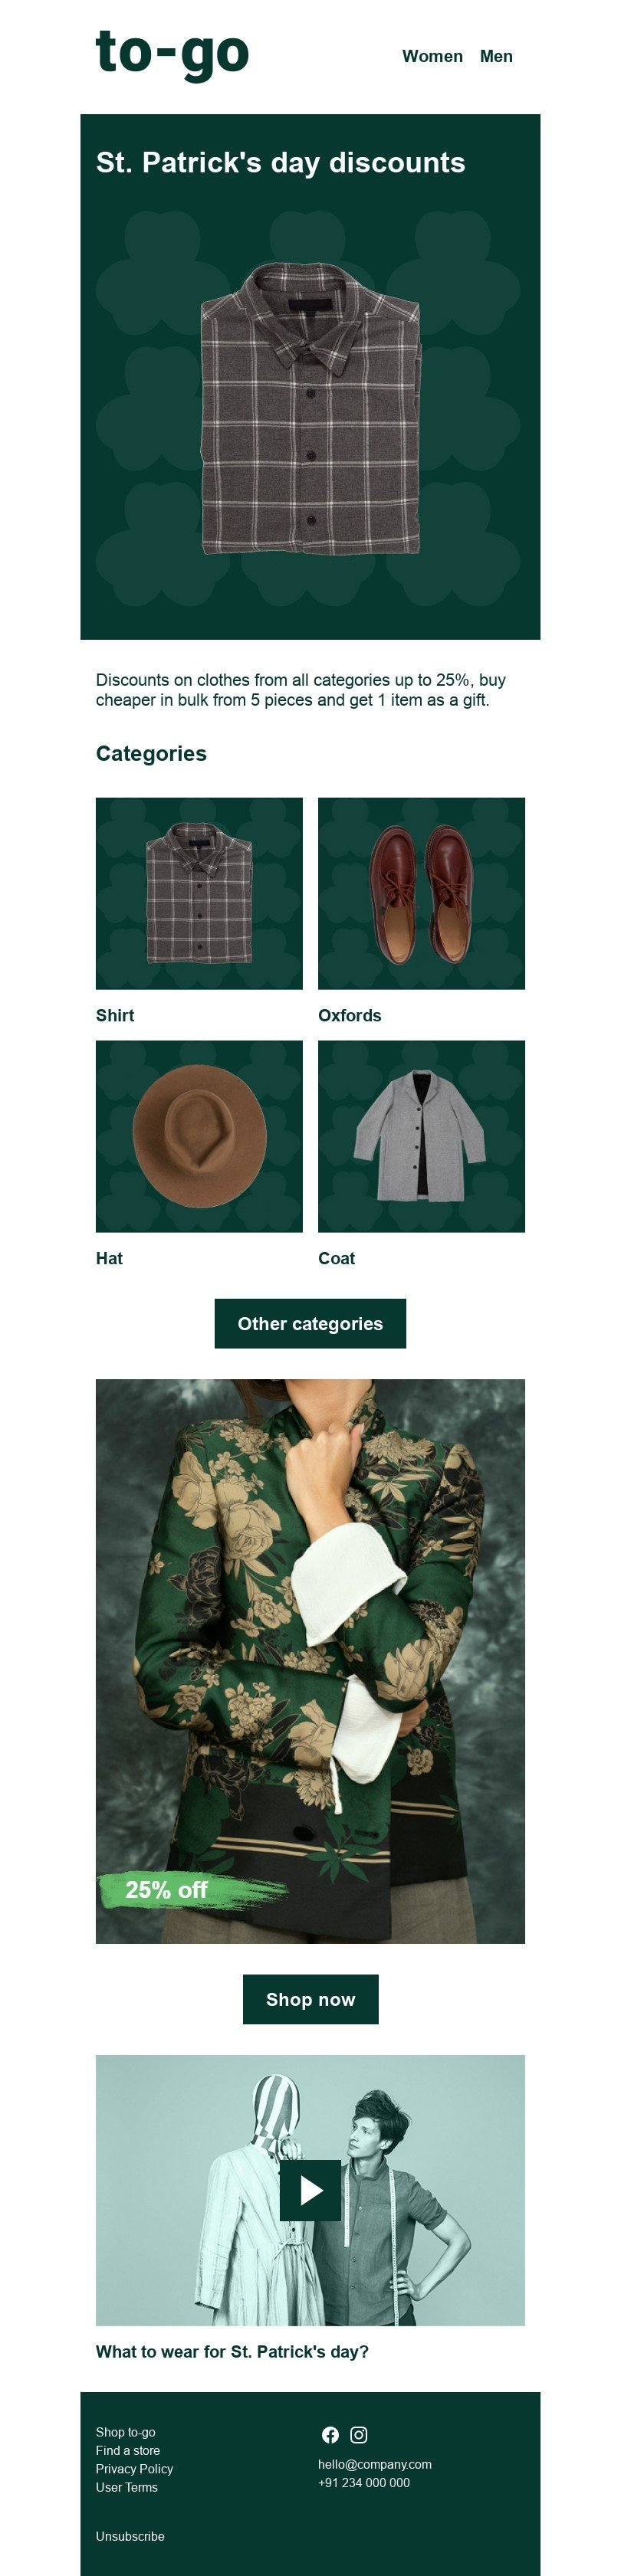 St. Patrick's Day Email Template «Daily Discounts» for Fashion industry desktop view